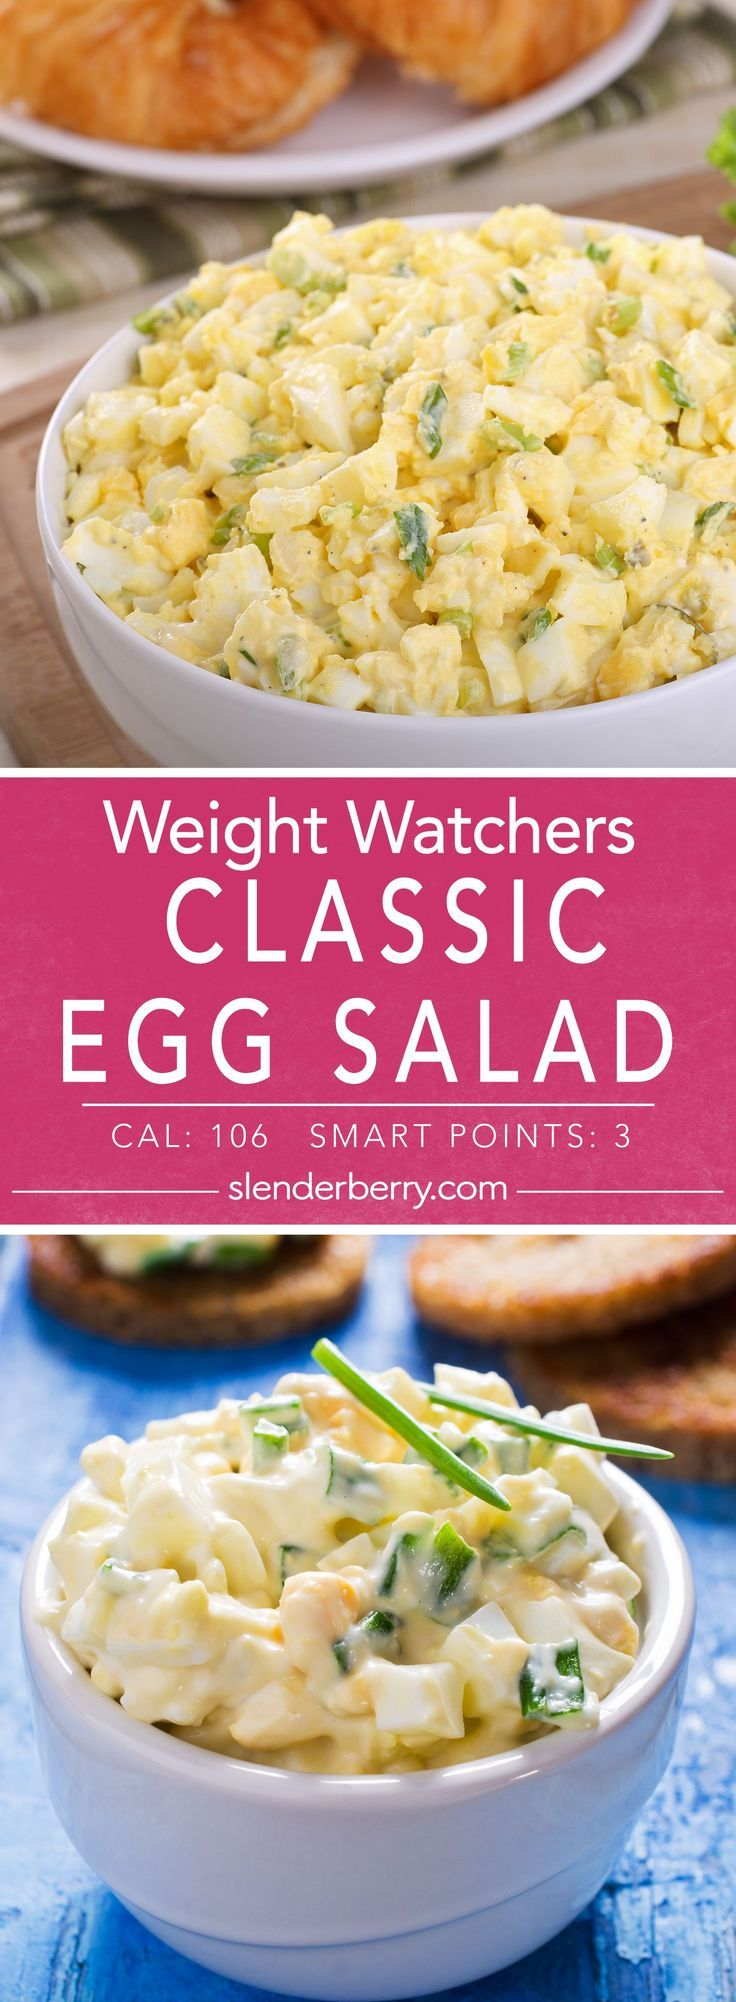 Weight Watchers 3 Smart Points Classic Egg Salad Recipe – 106 Calories INGREDIENTS 4 servings 4 egg large 2 egg white large 2 tbsp fresh chives chopped 2 tsp reduced-calorie mayonnaise 1/2 tsp dijon mustard 1/2 tsp salt dill (to taste) 1/4 tsp black pepper ground DIRECTIONS 1. Place eggs in a medium saucepan andMore